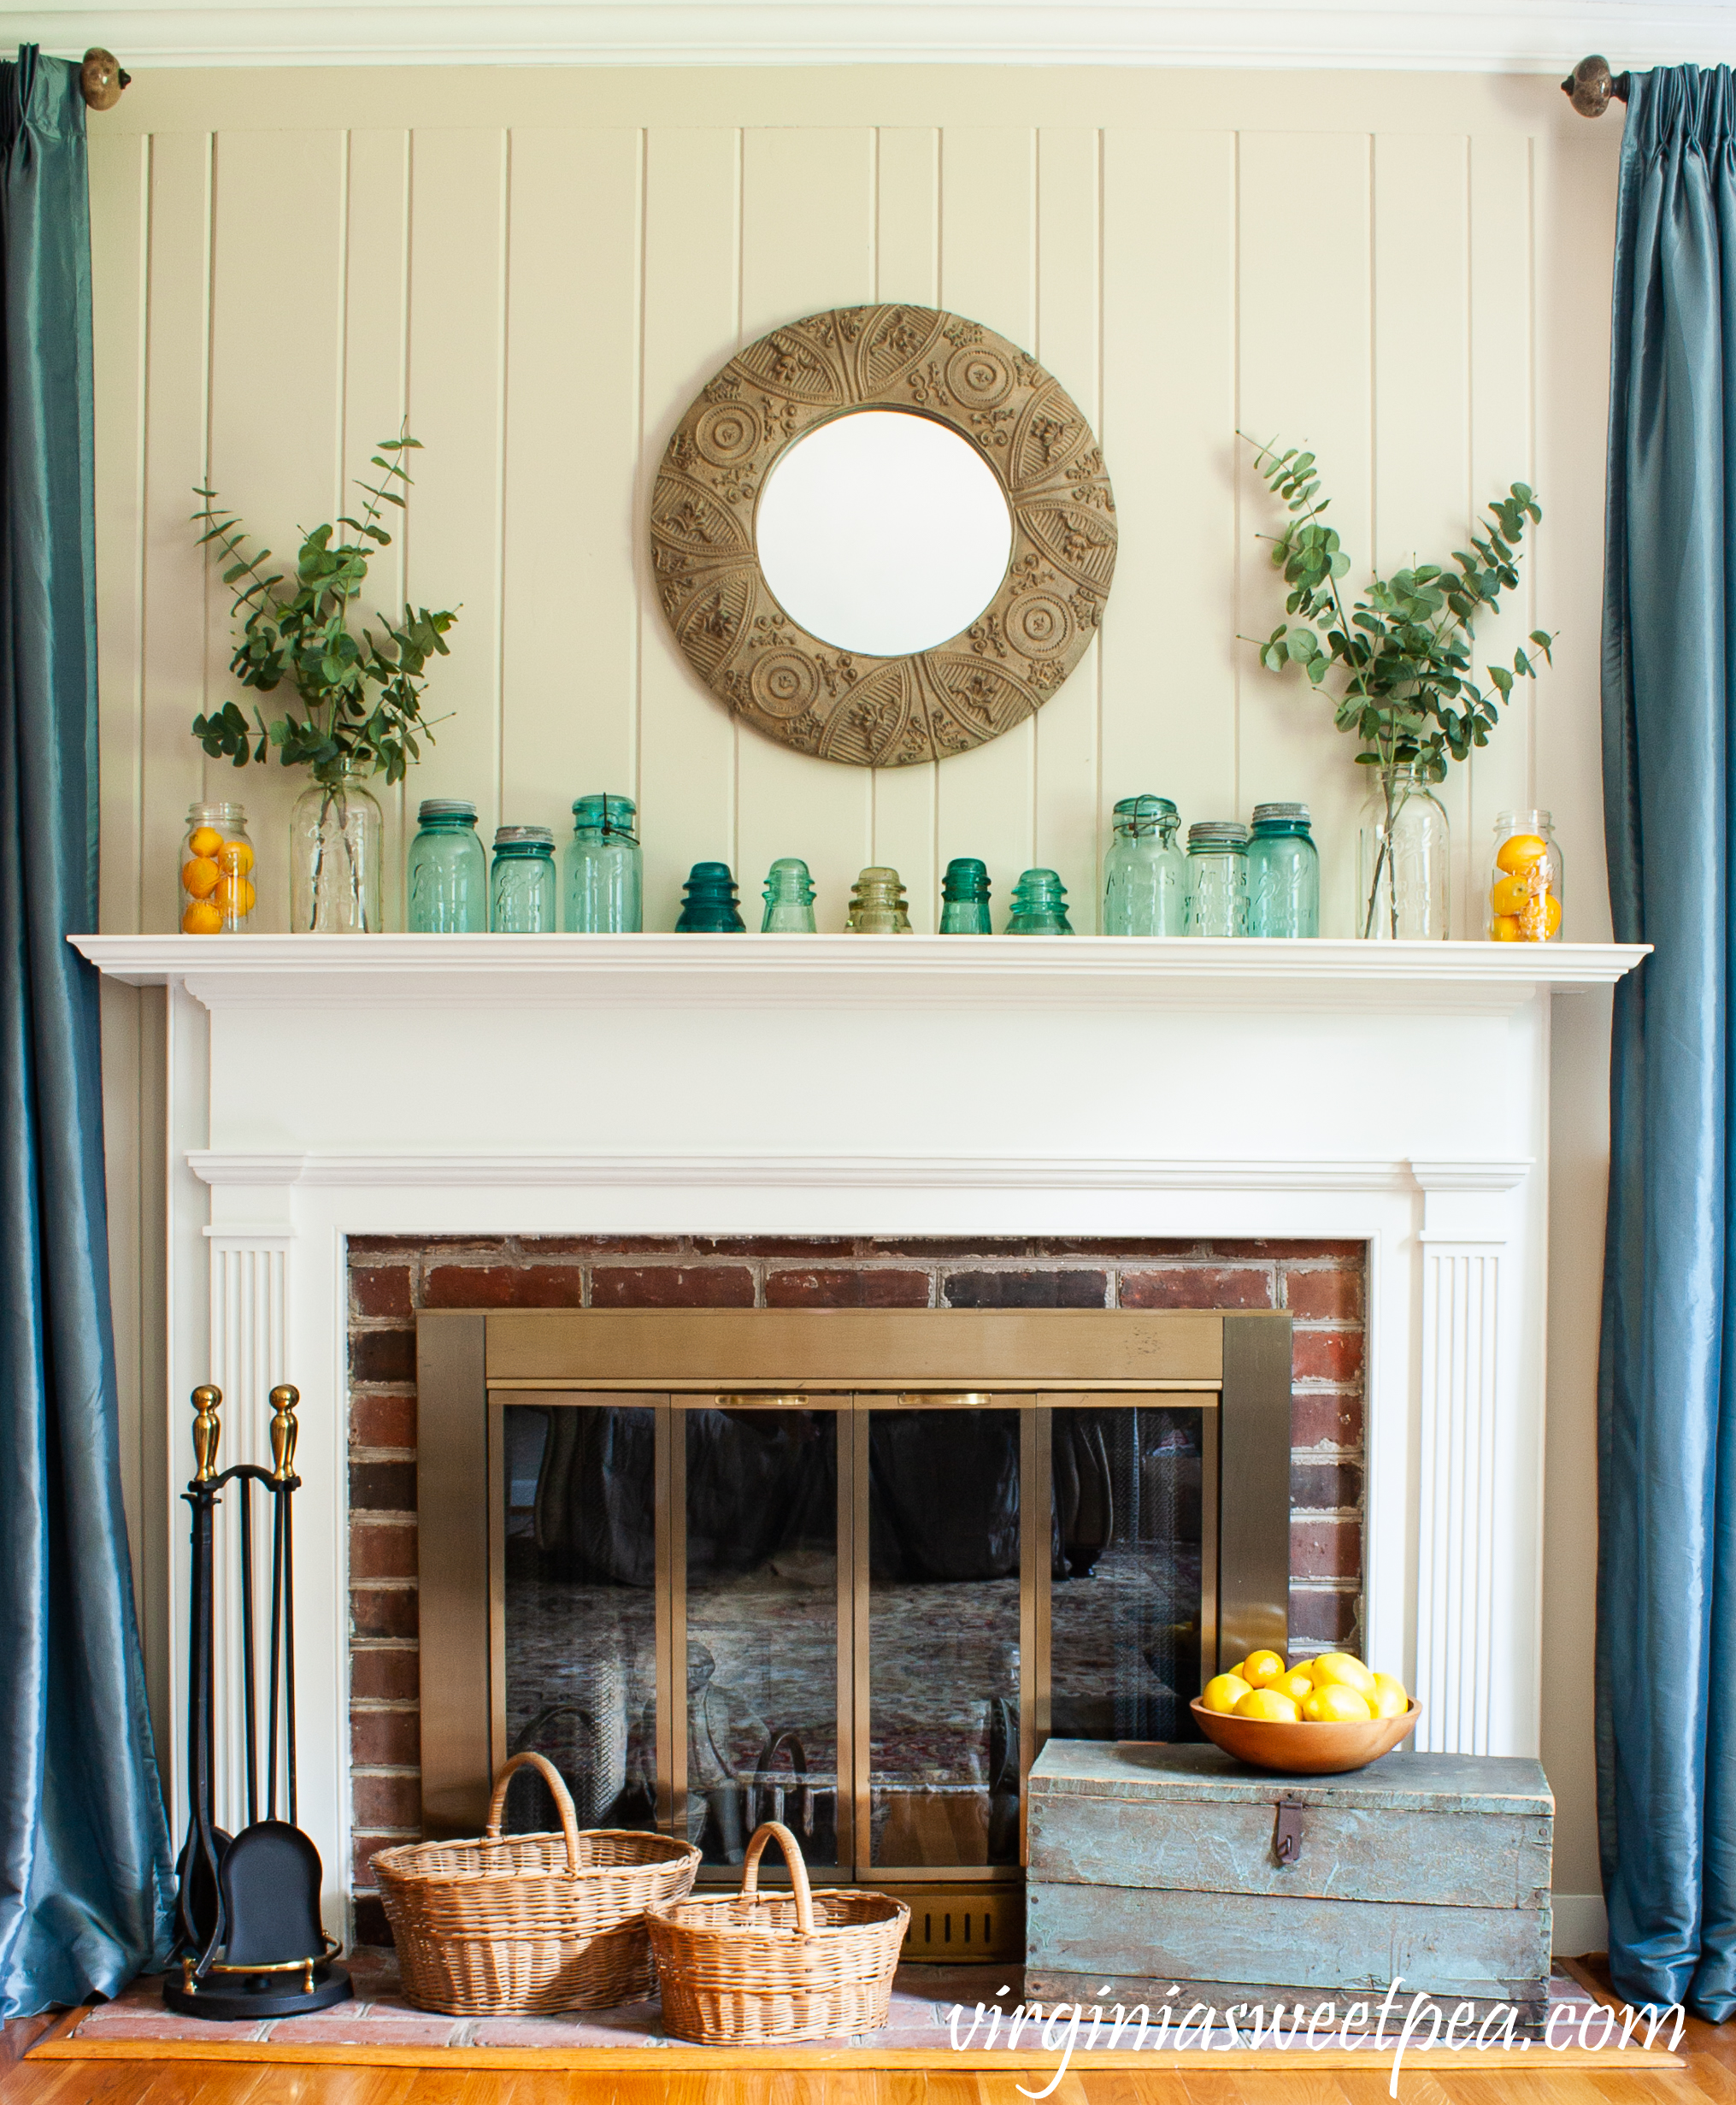 Summer mantel with vintage canning jars, baskets, lemons, eucalyptus, and a vintage tool box.